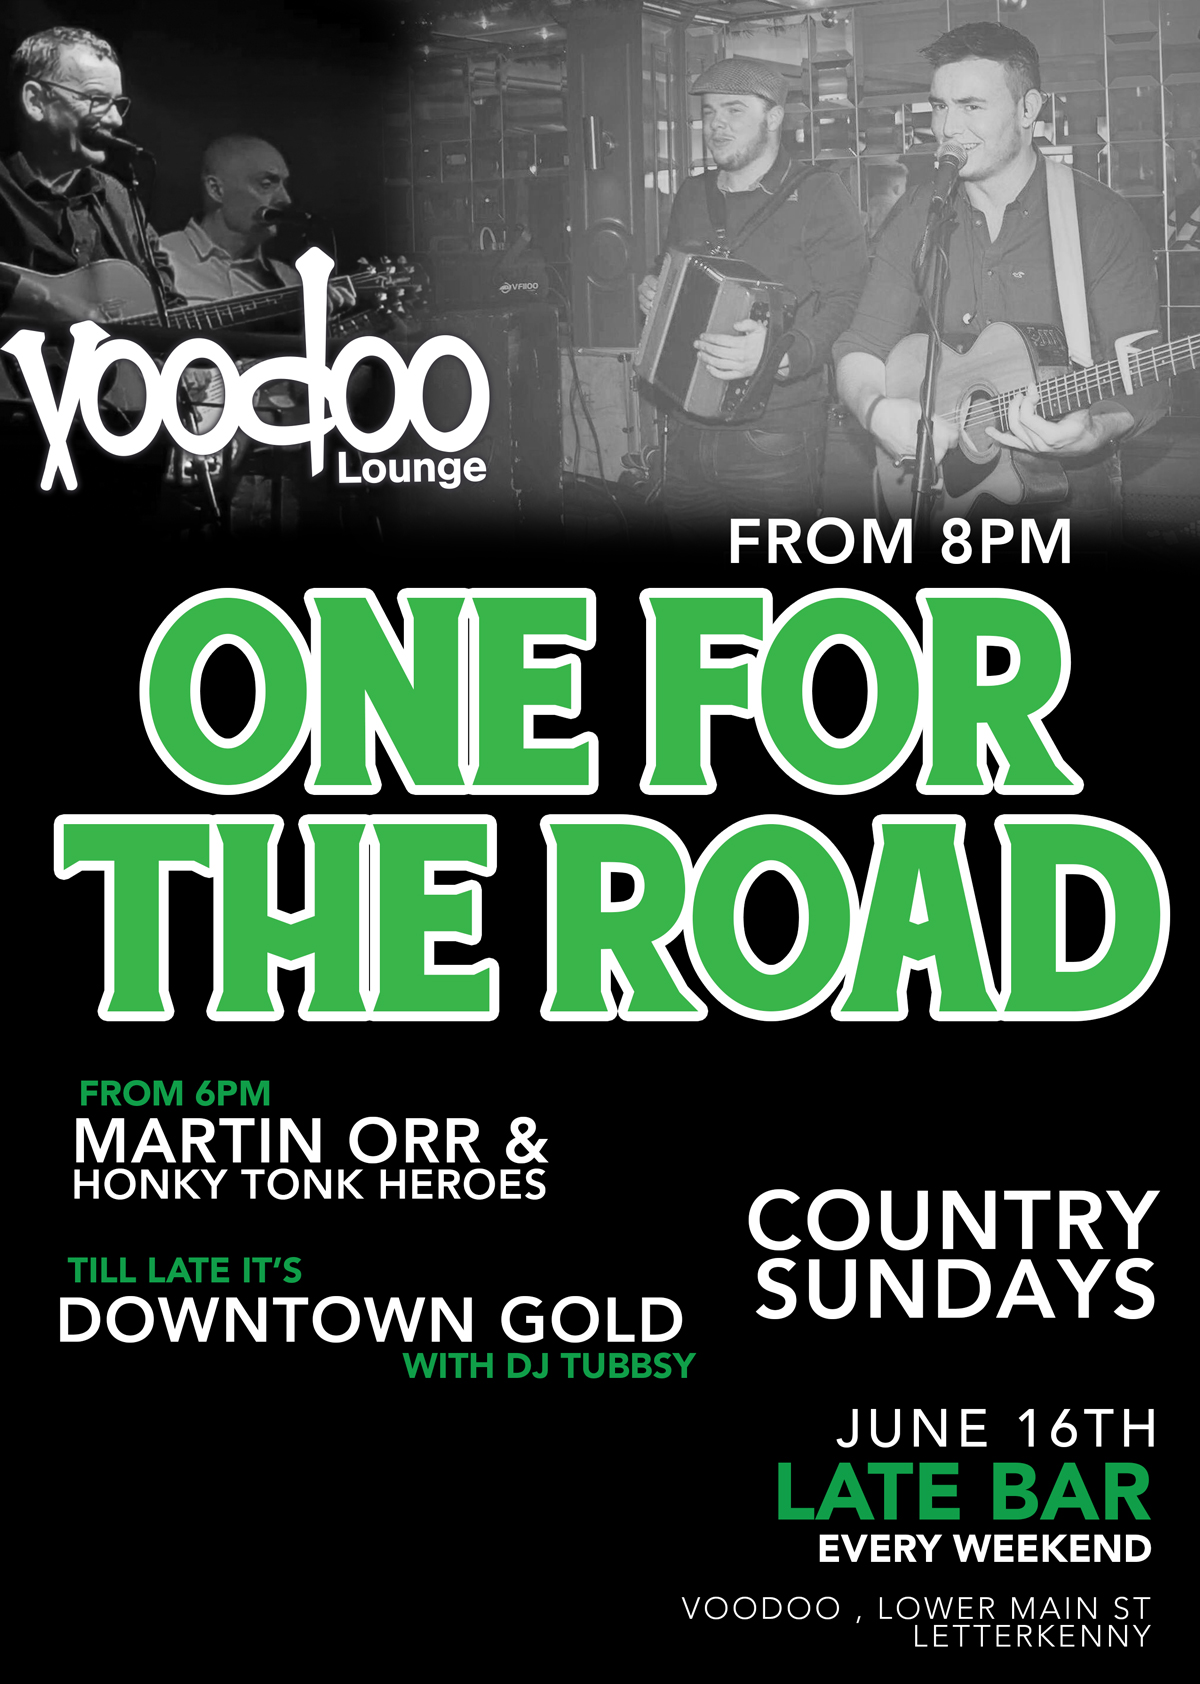 voodoo-lounge---MARTIN-ORR----one-for-the-road-sun-june-16-2019.jpg